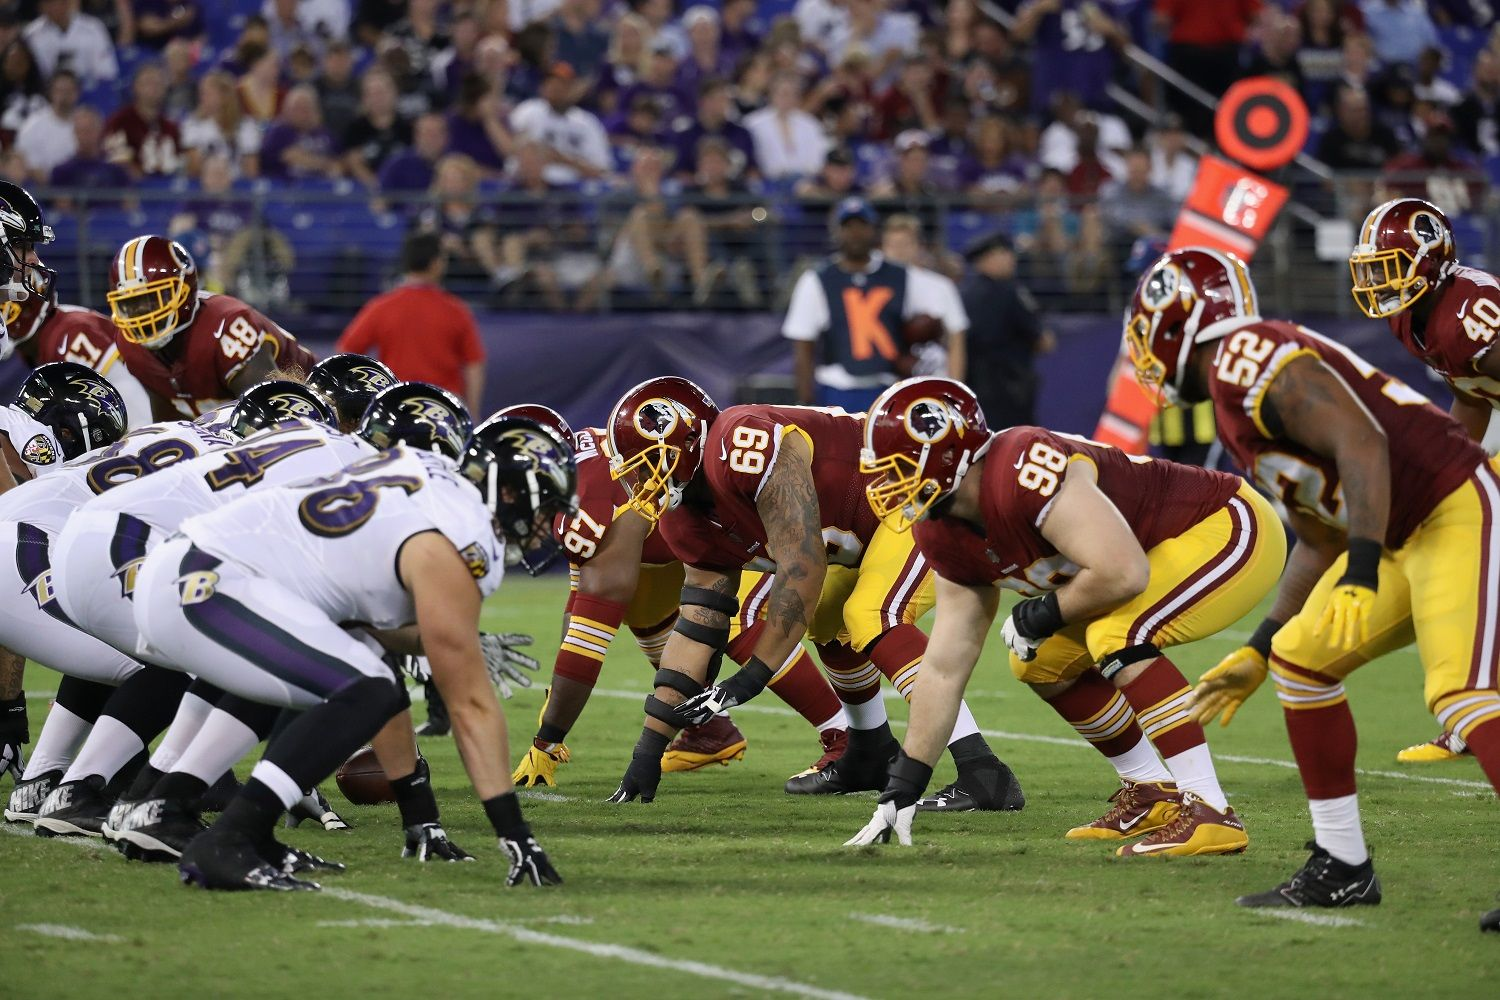 BALTIMORE, MD - AUGUST 10: The Baltimore Ravens offense lines up against the Washington Redskins defense during a preseason game at M&T Bank Stadium on August 10, 2017 in Baltimore, Maryland.  (Photo by Rob Carr/Getty Images)